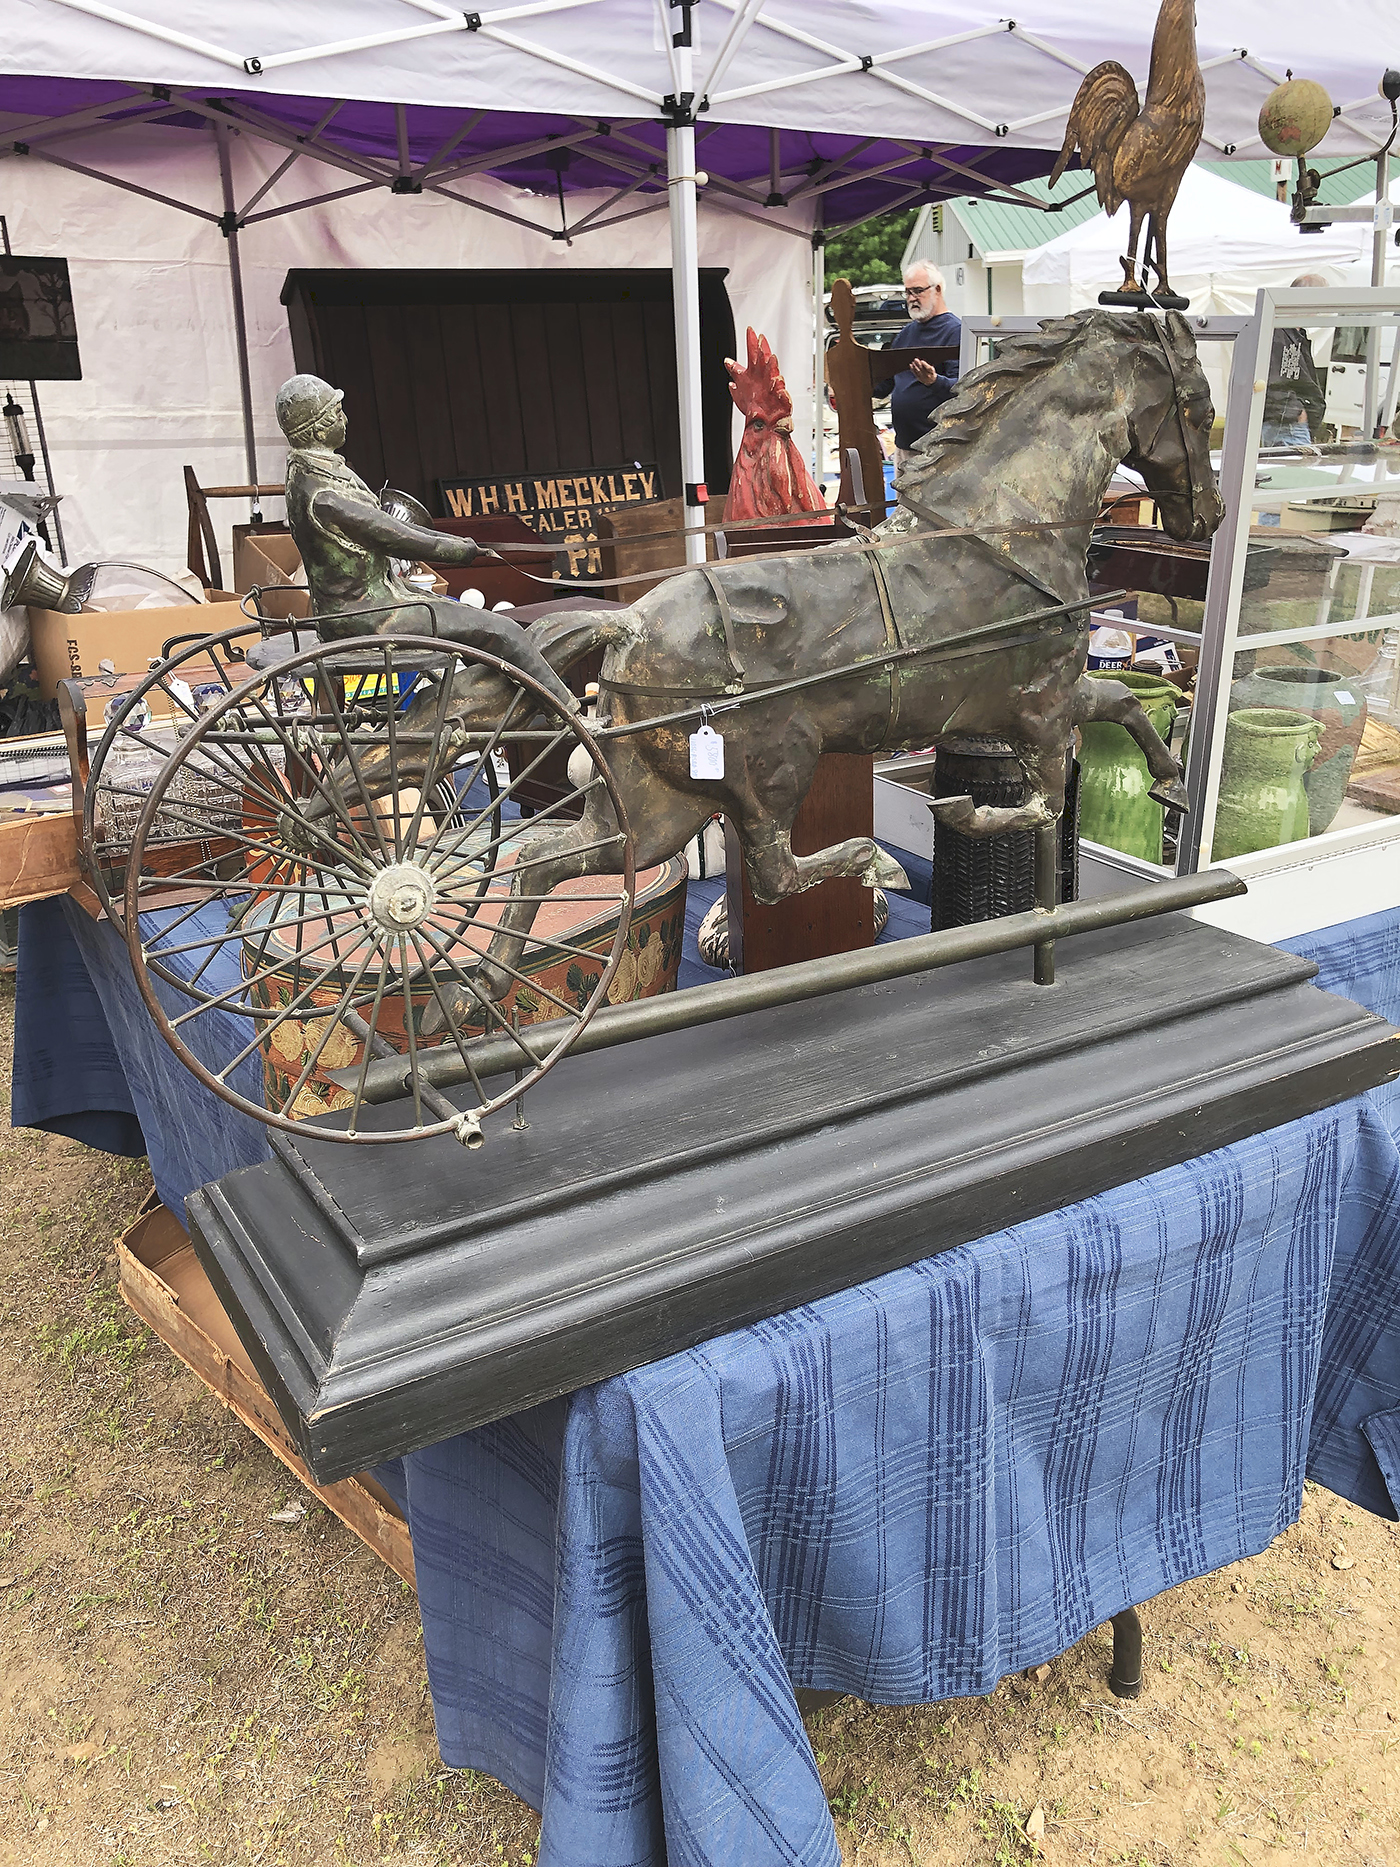 Steve Still, Manheim, Penn., brought a selection of folk art. The horse and sulky weathervane with a good surface was priced at $5,800. He also offered a very detailed watercolor of a New England mill town, with buildings, a train, a river and more, priced at $2,850.